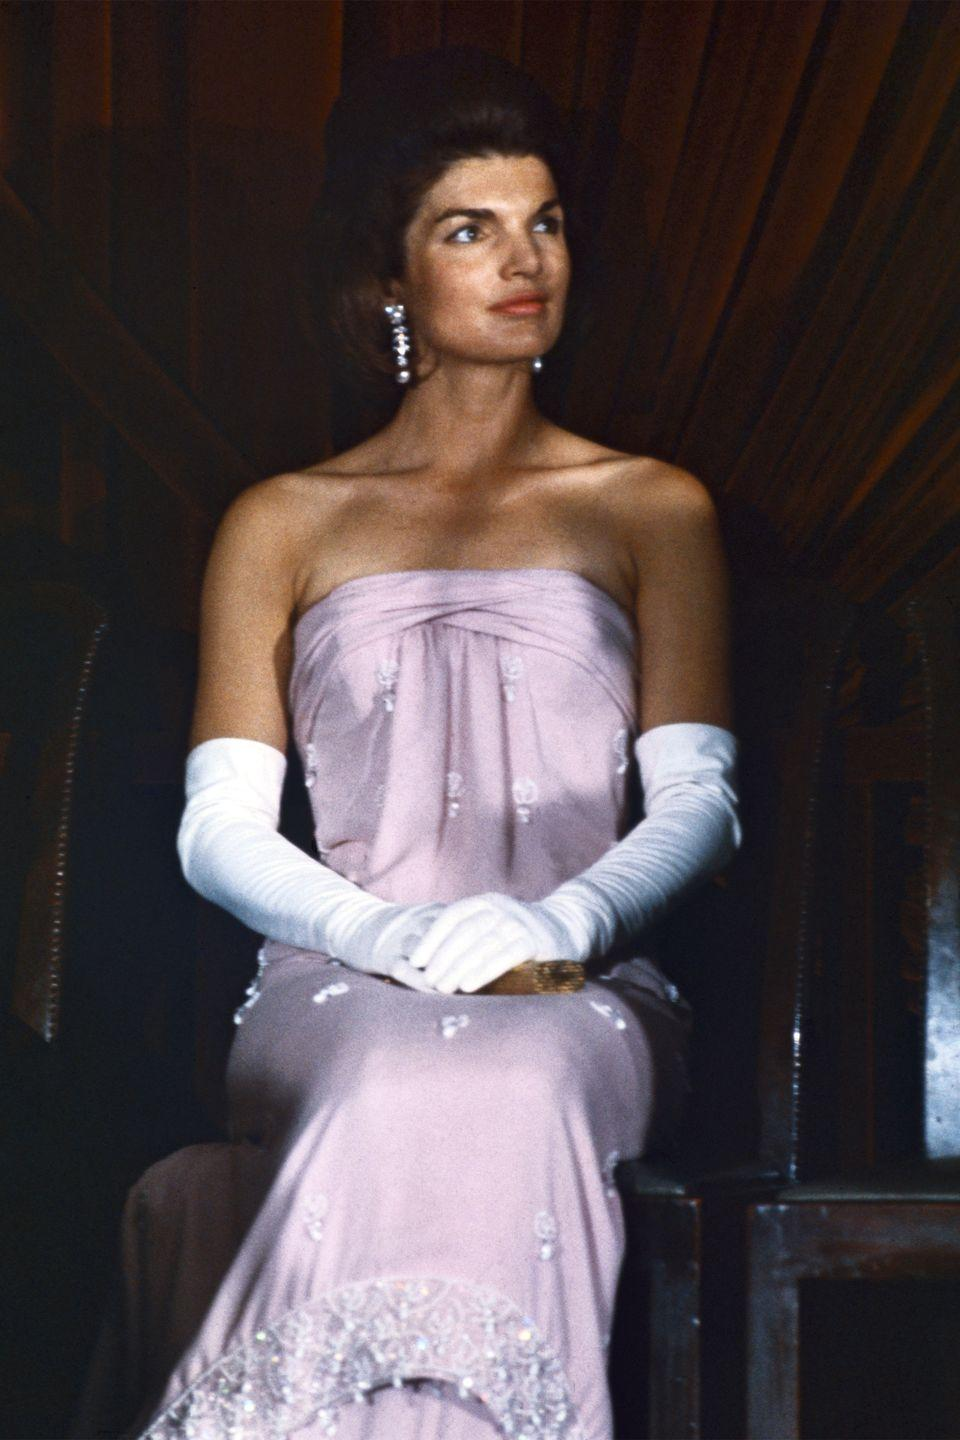 <p>Jackie looked regal in a strapless lavender gown, diamond drop earrings, and long white gloves during a ceremony at the National Gallery of Art. </p>